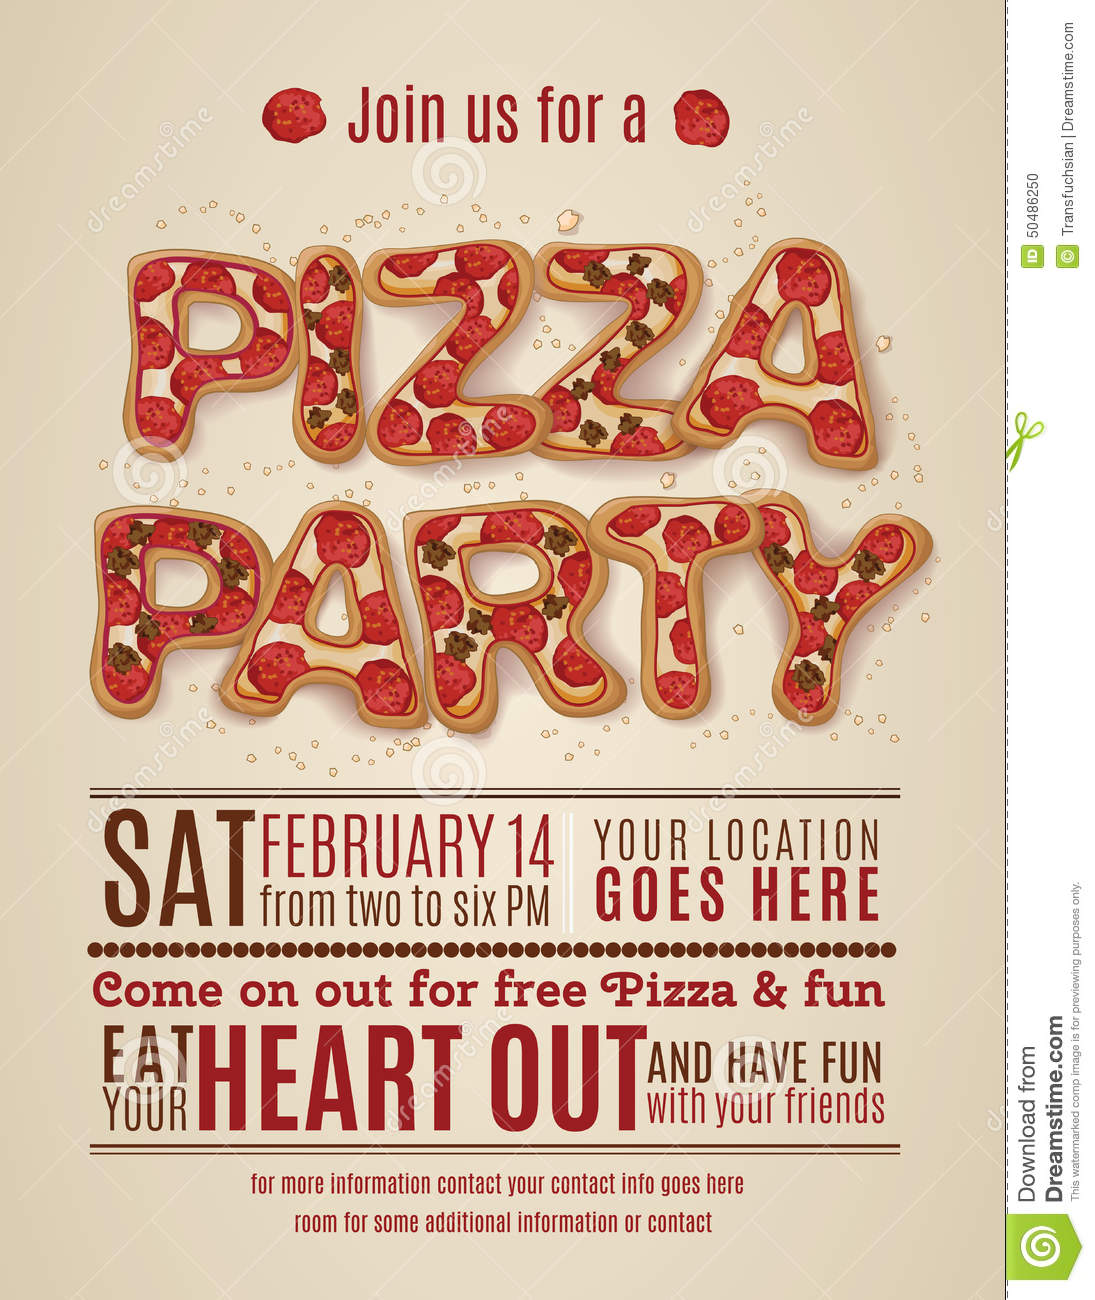 Stock Illustration Pizza Party Invitation Template Vector Flyer Design Image50486250 on free printable movie ticket templates